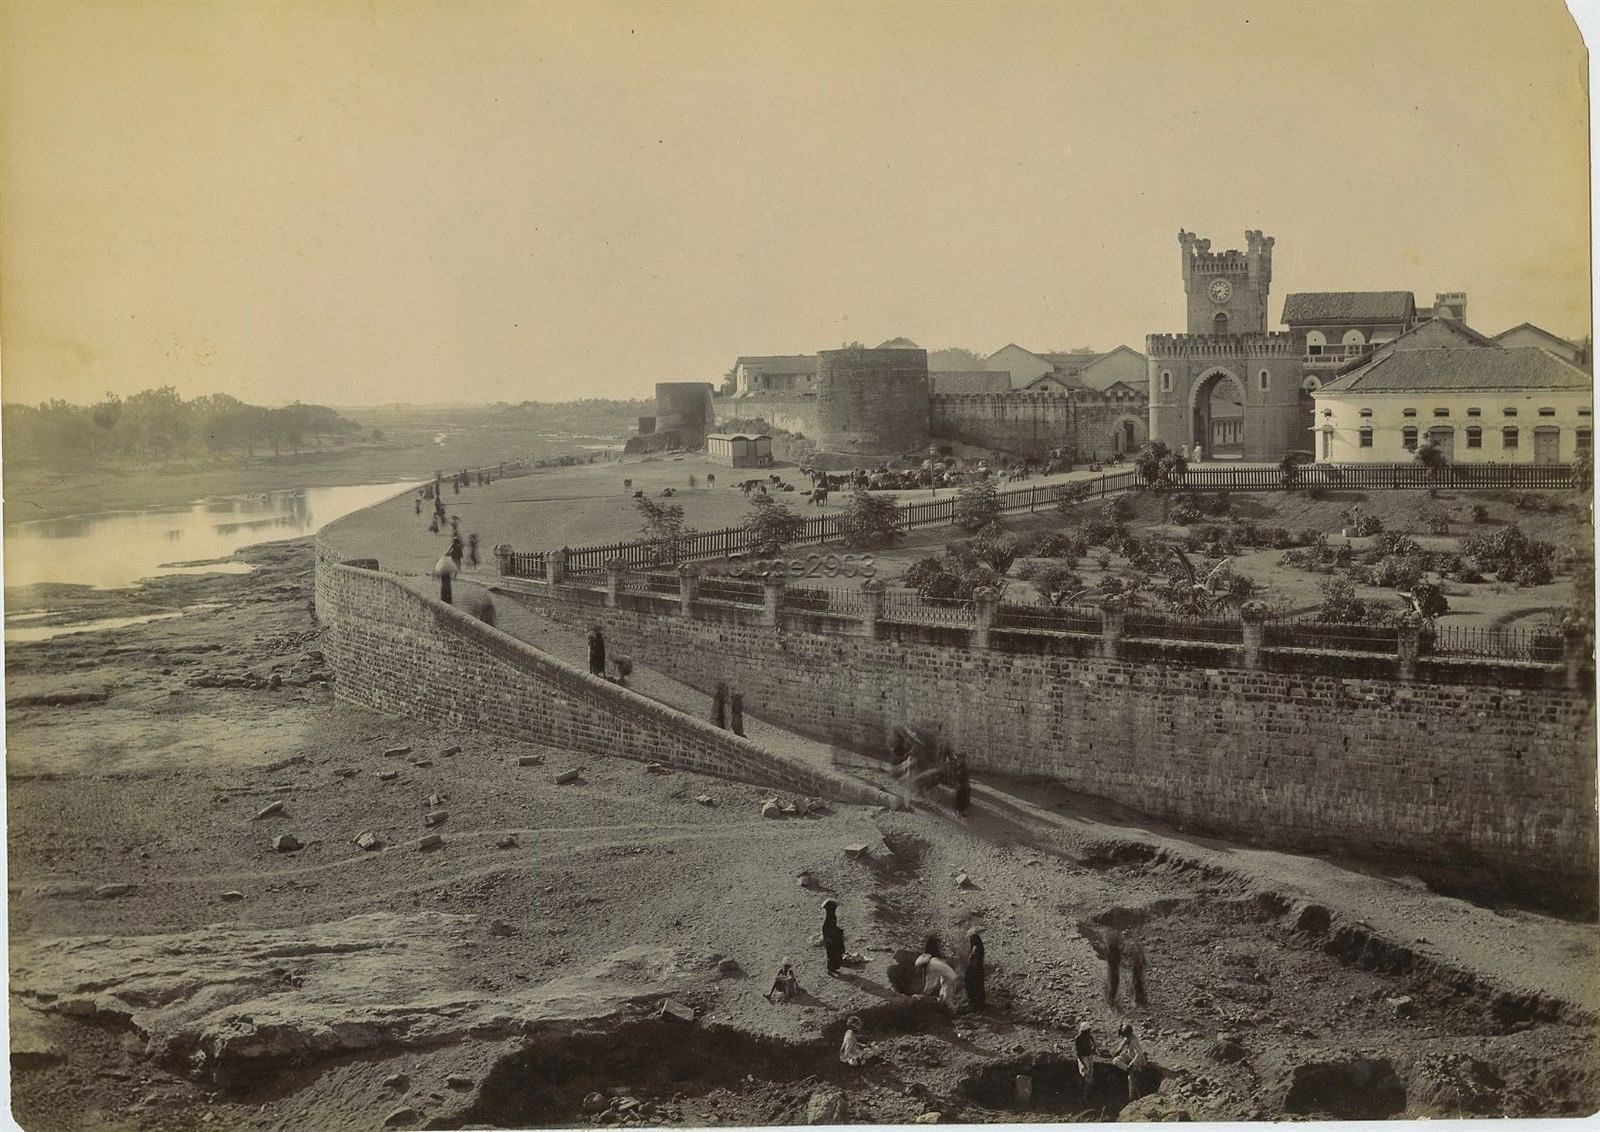 Walled City on a River in India c1900's